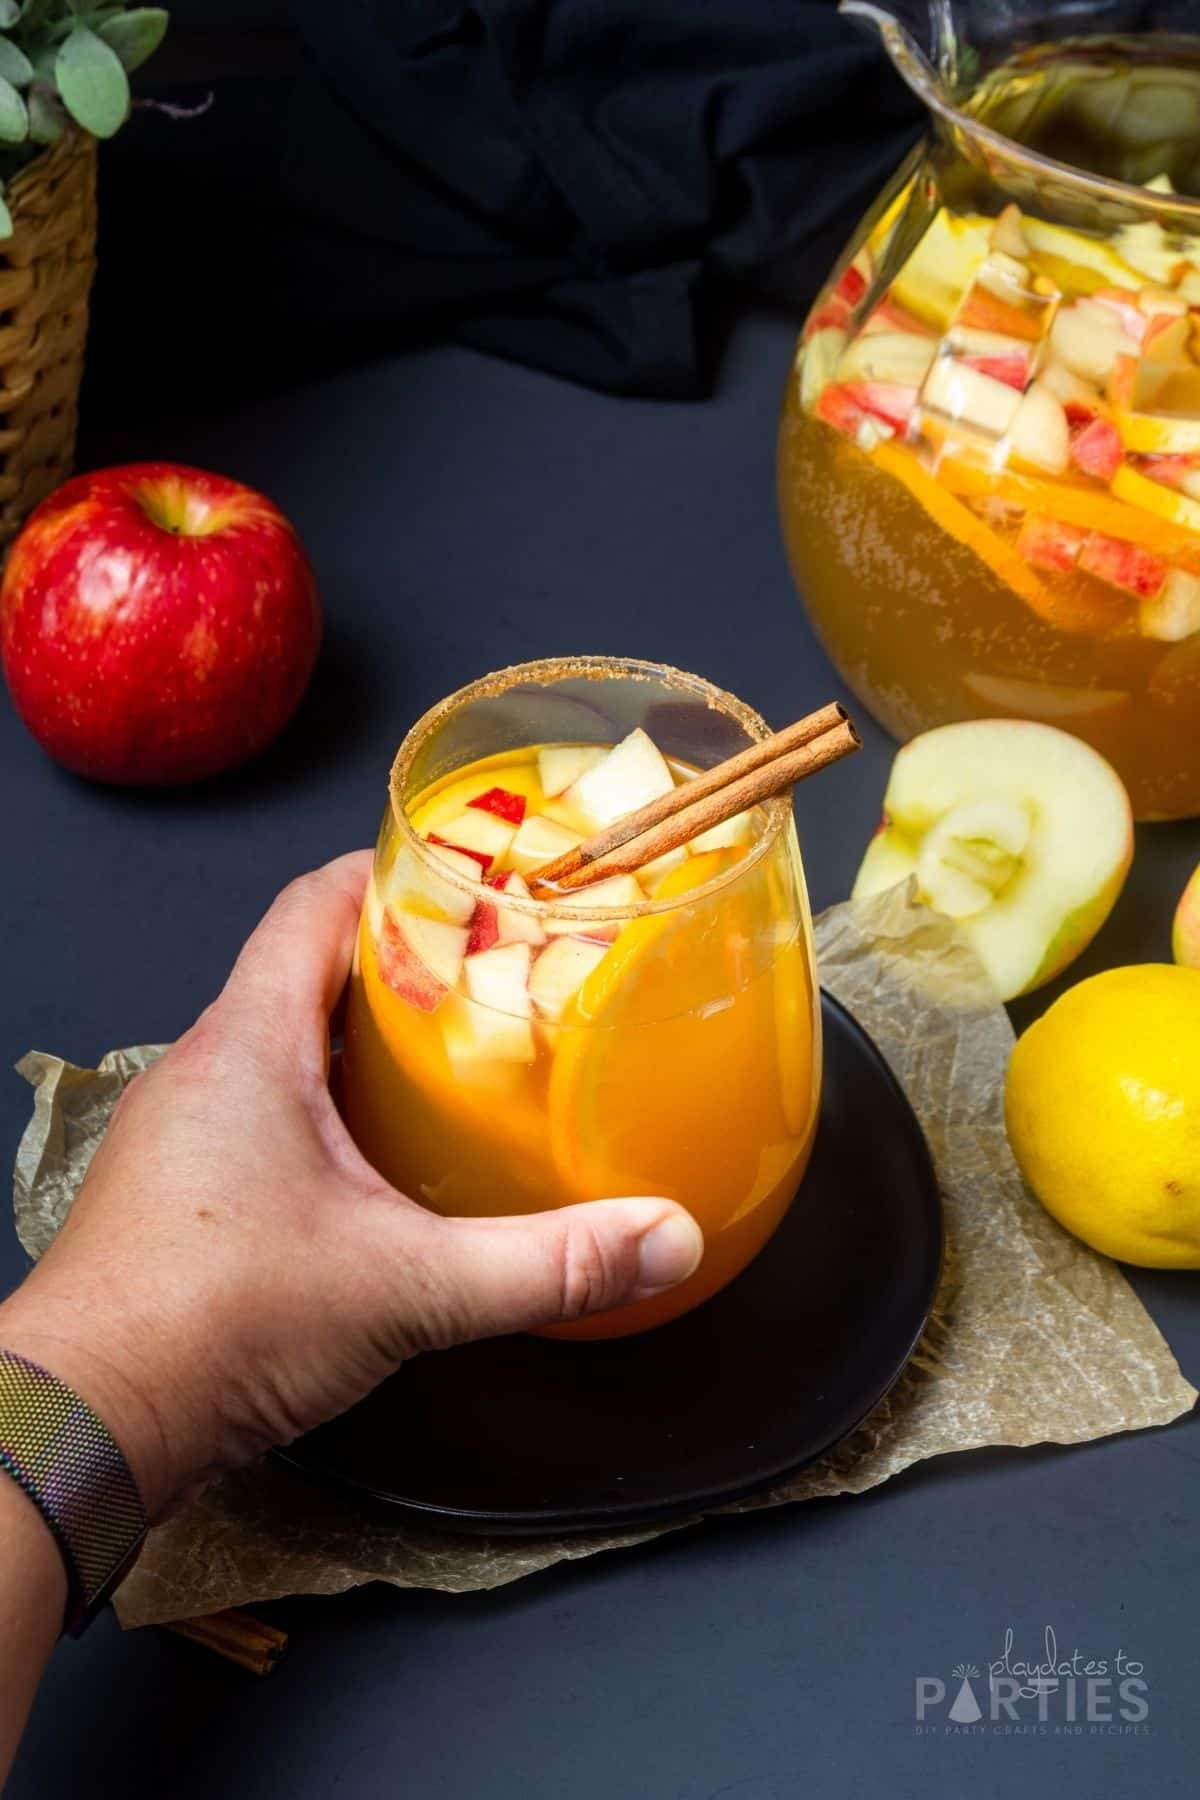 A woman's hand grabbing a glass of spiced apple cider sangria.